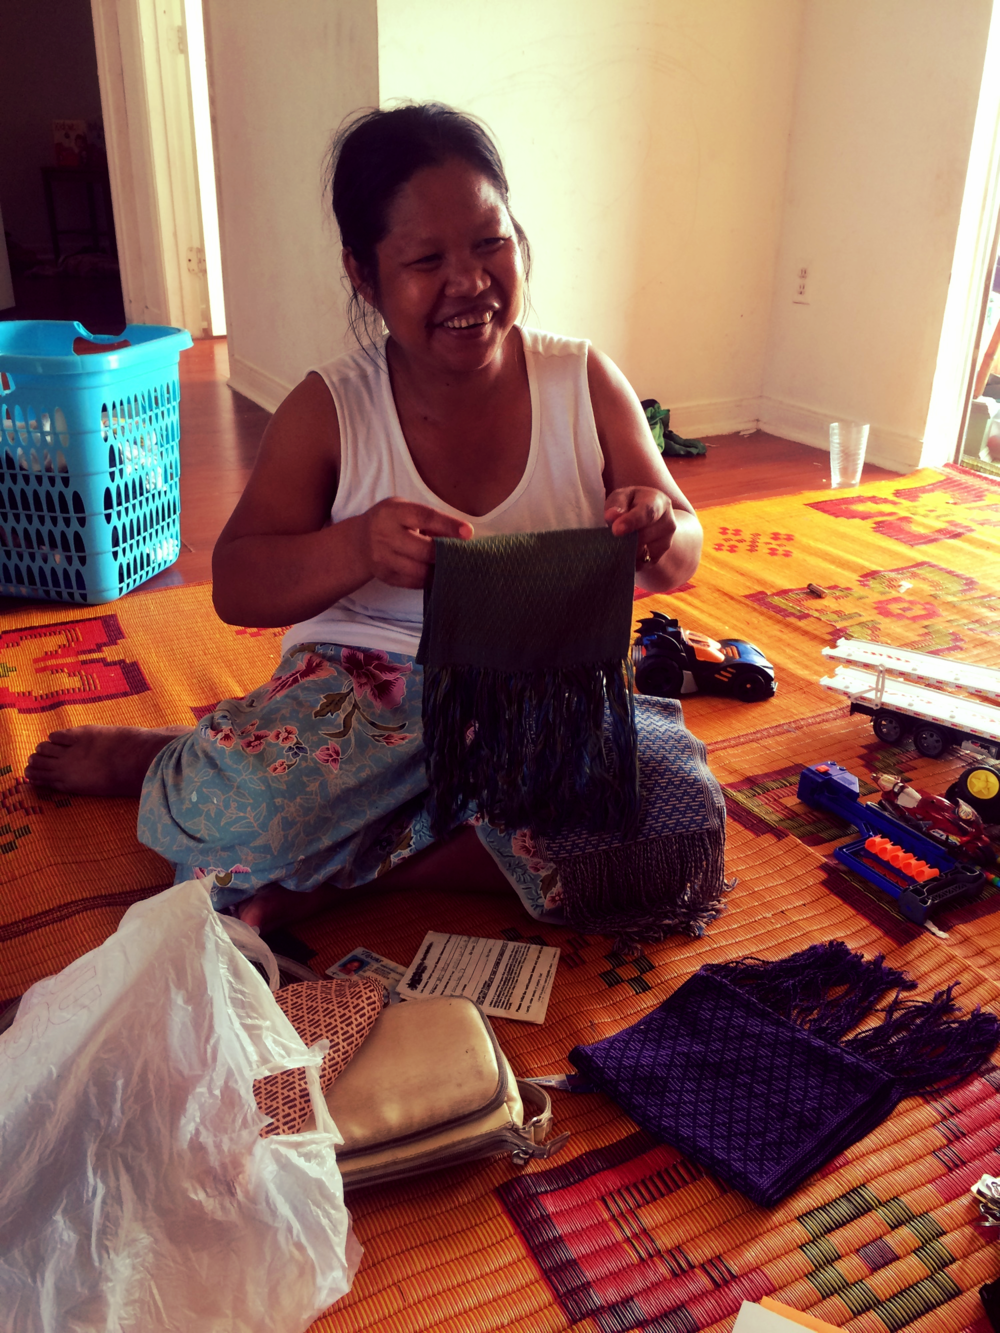 At Mu Mu's home while she showed off one of her hand woven scarves.